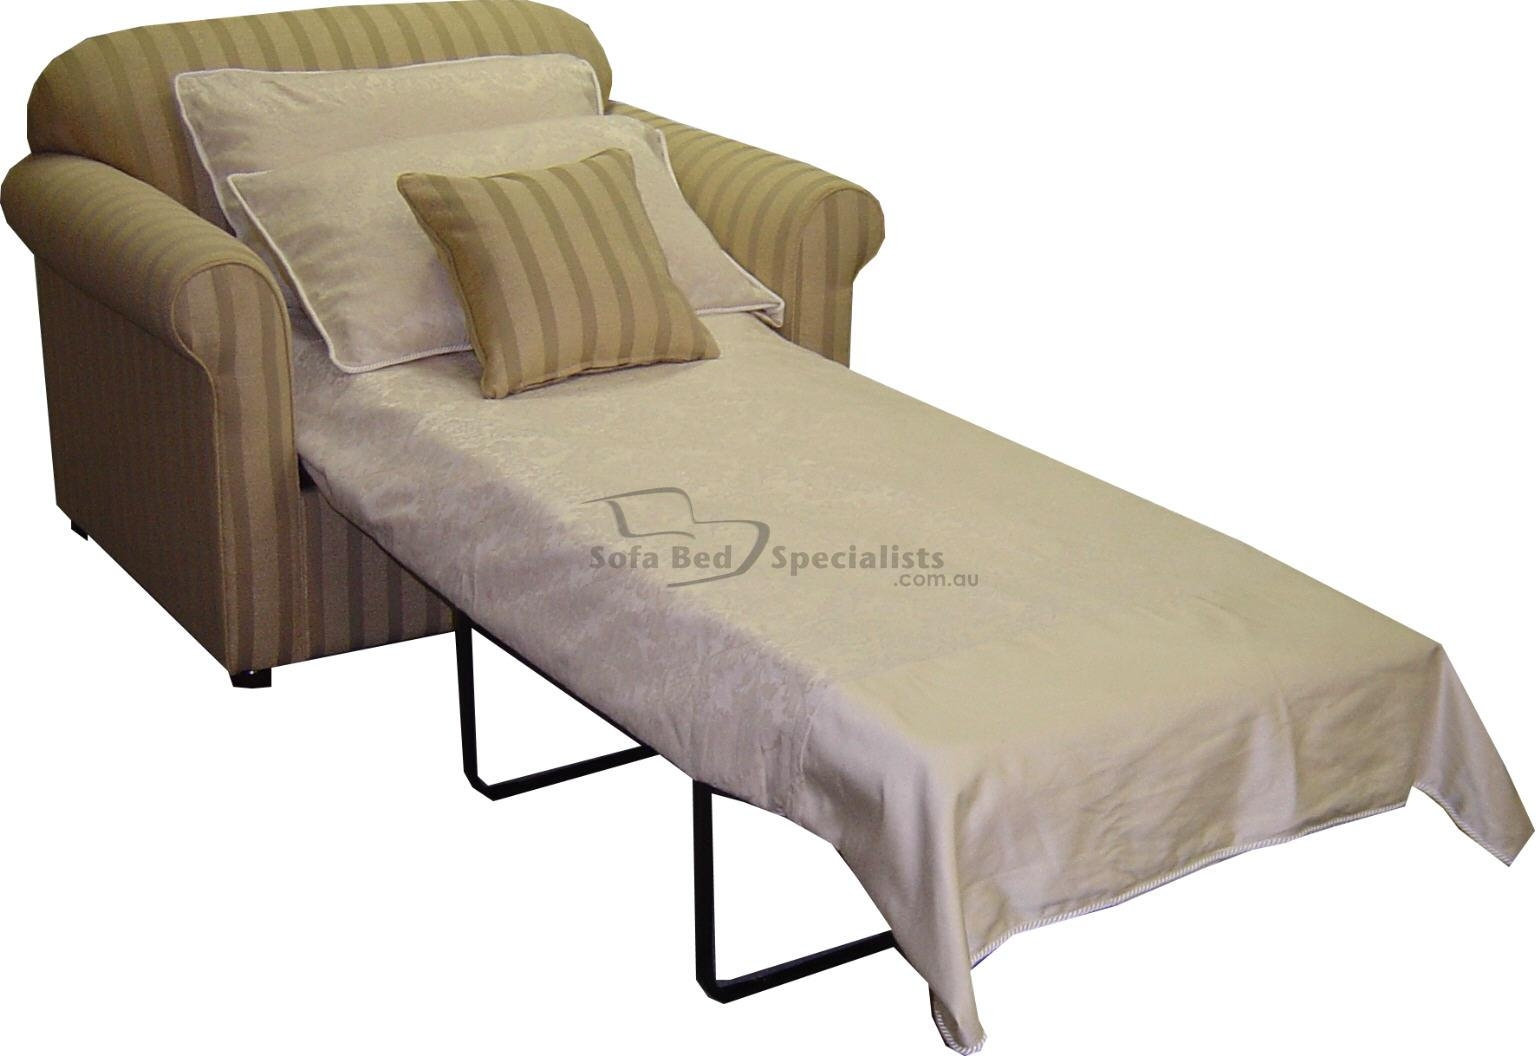 15 Best Collection of Single Chair Sofa Bed  Sofa Ideas